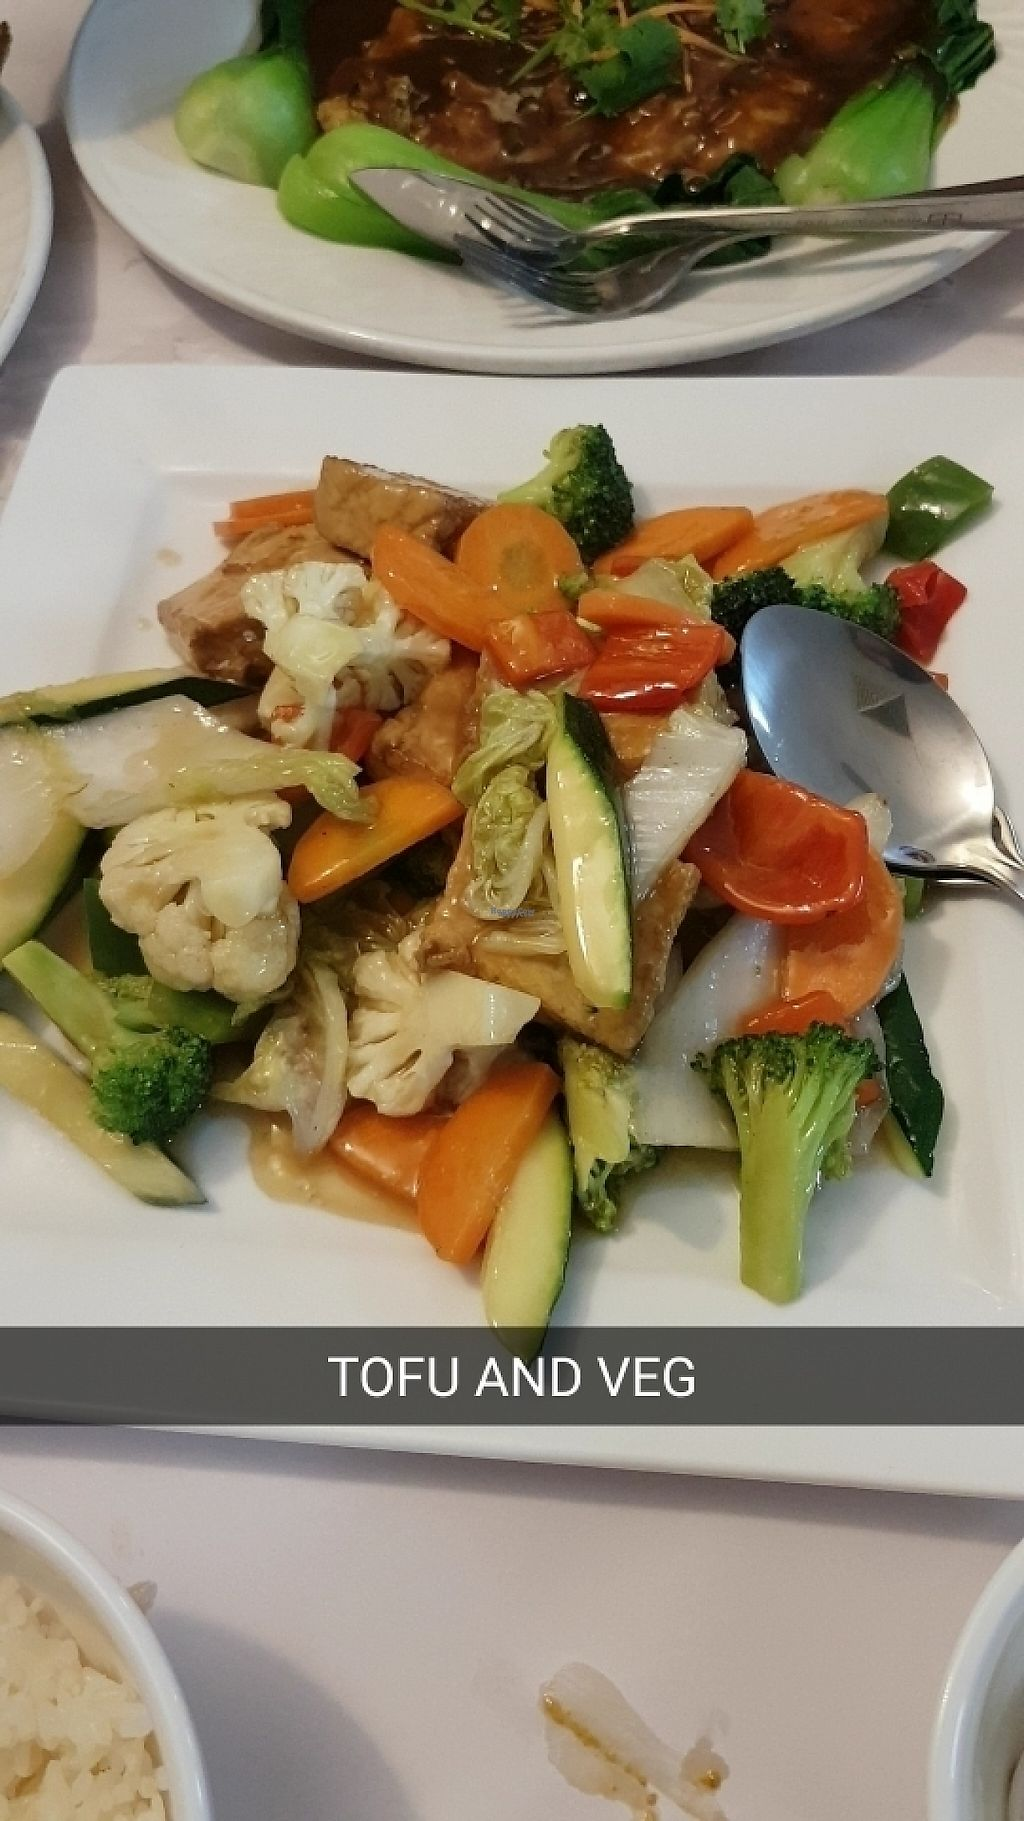 "Photo of Vegie Bowl  by <a href=""/members/profile/christy1993"">christy1993</a> <br/>Tofu and vegetables. A classic <br/> March 25, 2017  - <a href='/contact/abuse/image/88459/240495'>Report</a>"